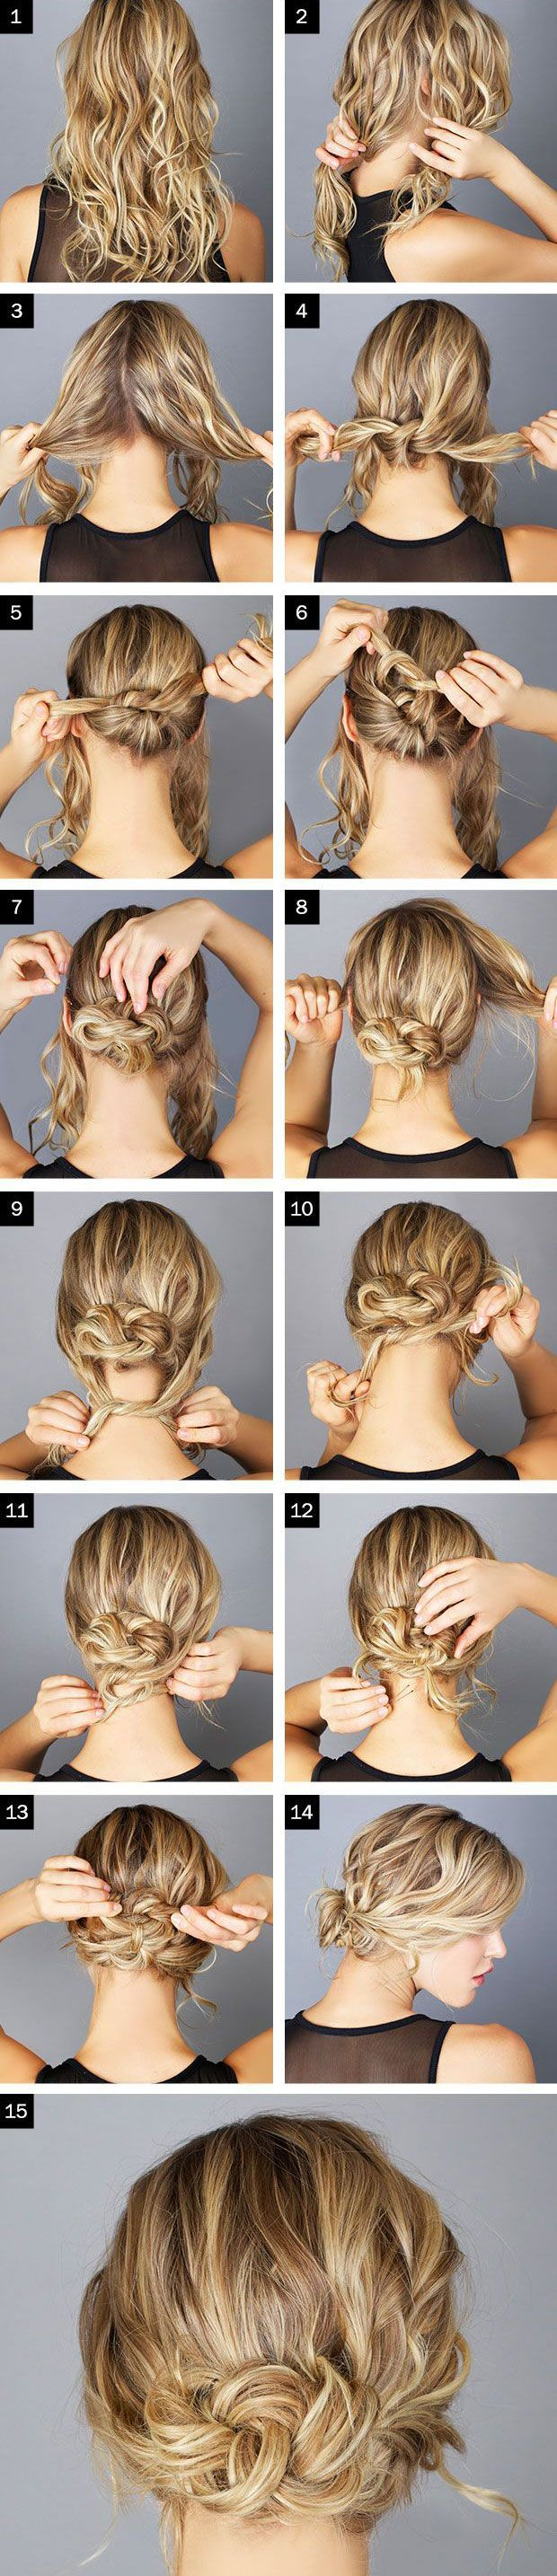 20 best hair styles i might try one day images on pinterest | hair